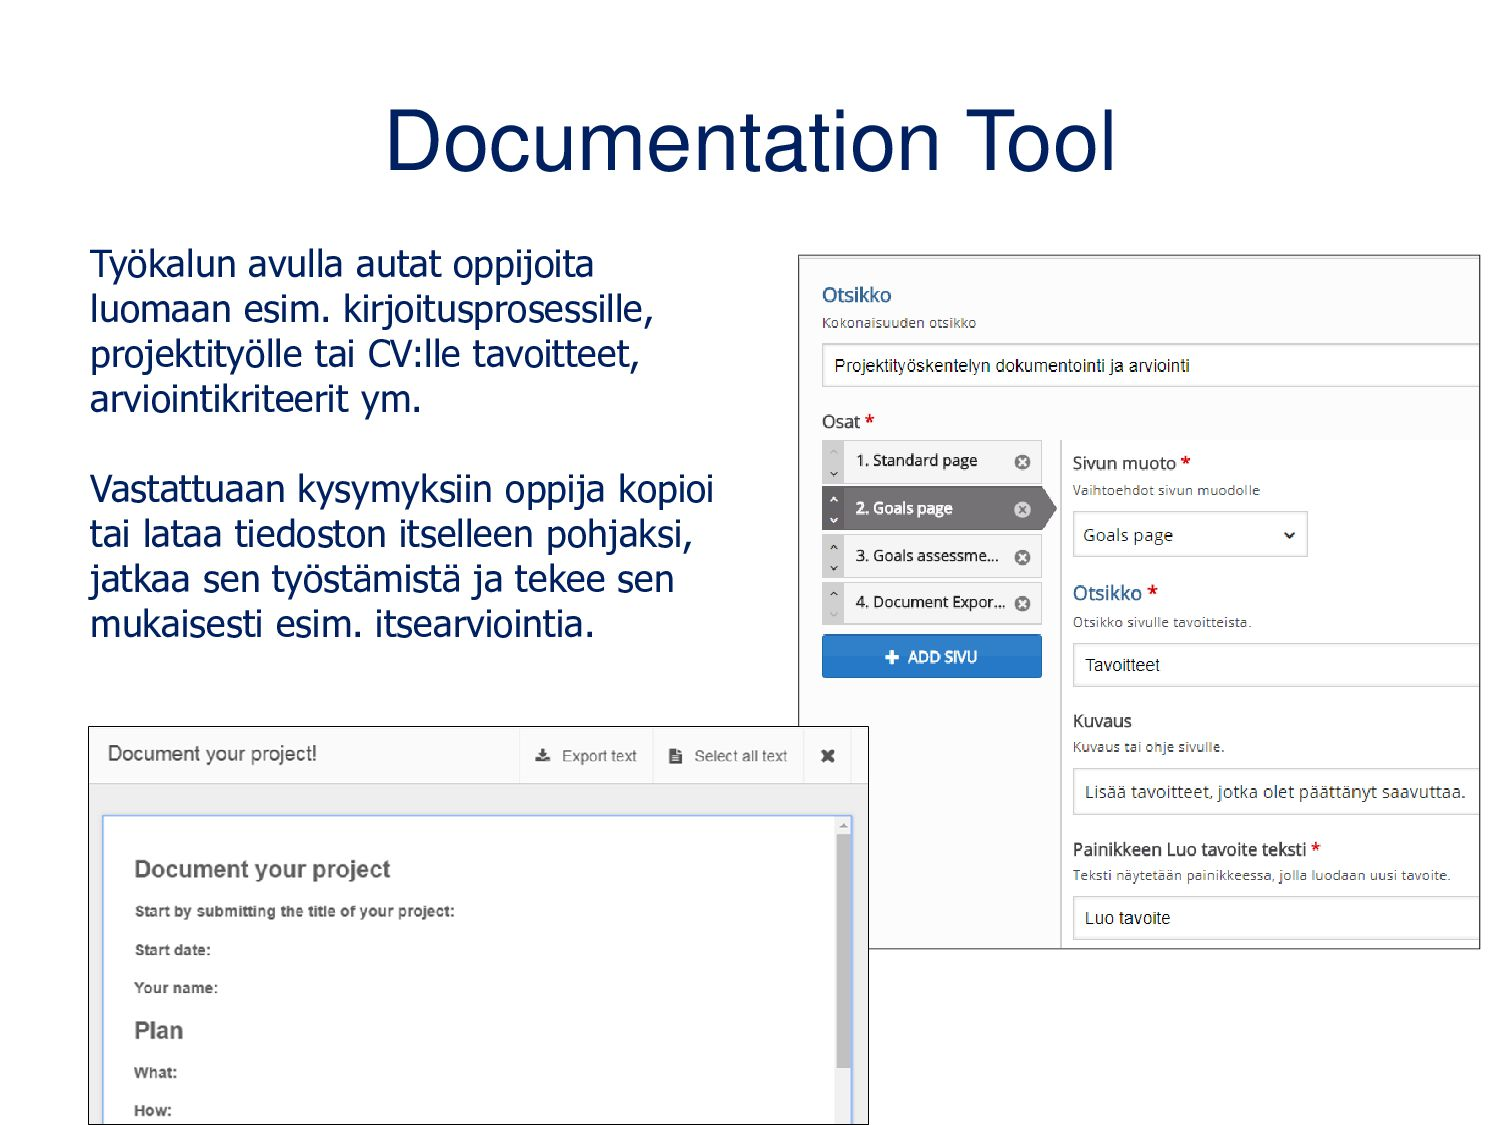 Appear.in for Chat and Talk • Yksinkertainen se...